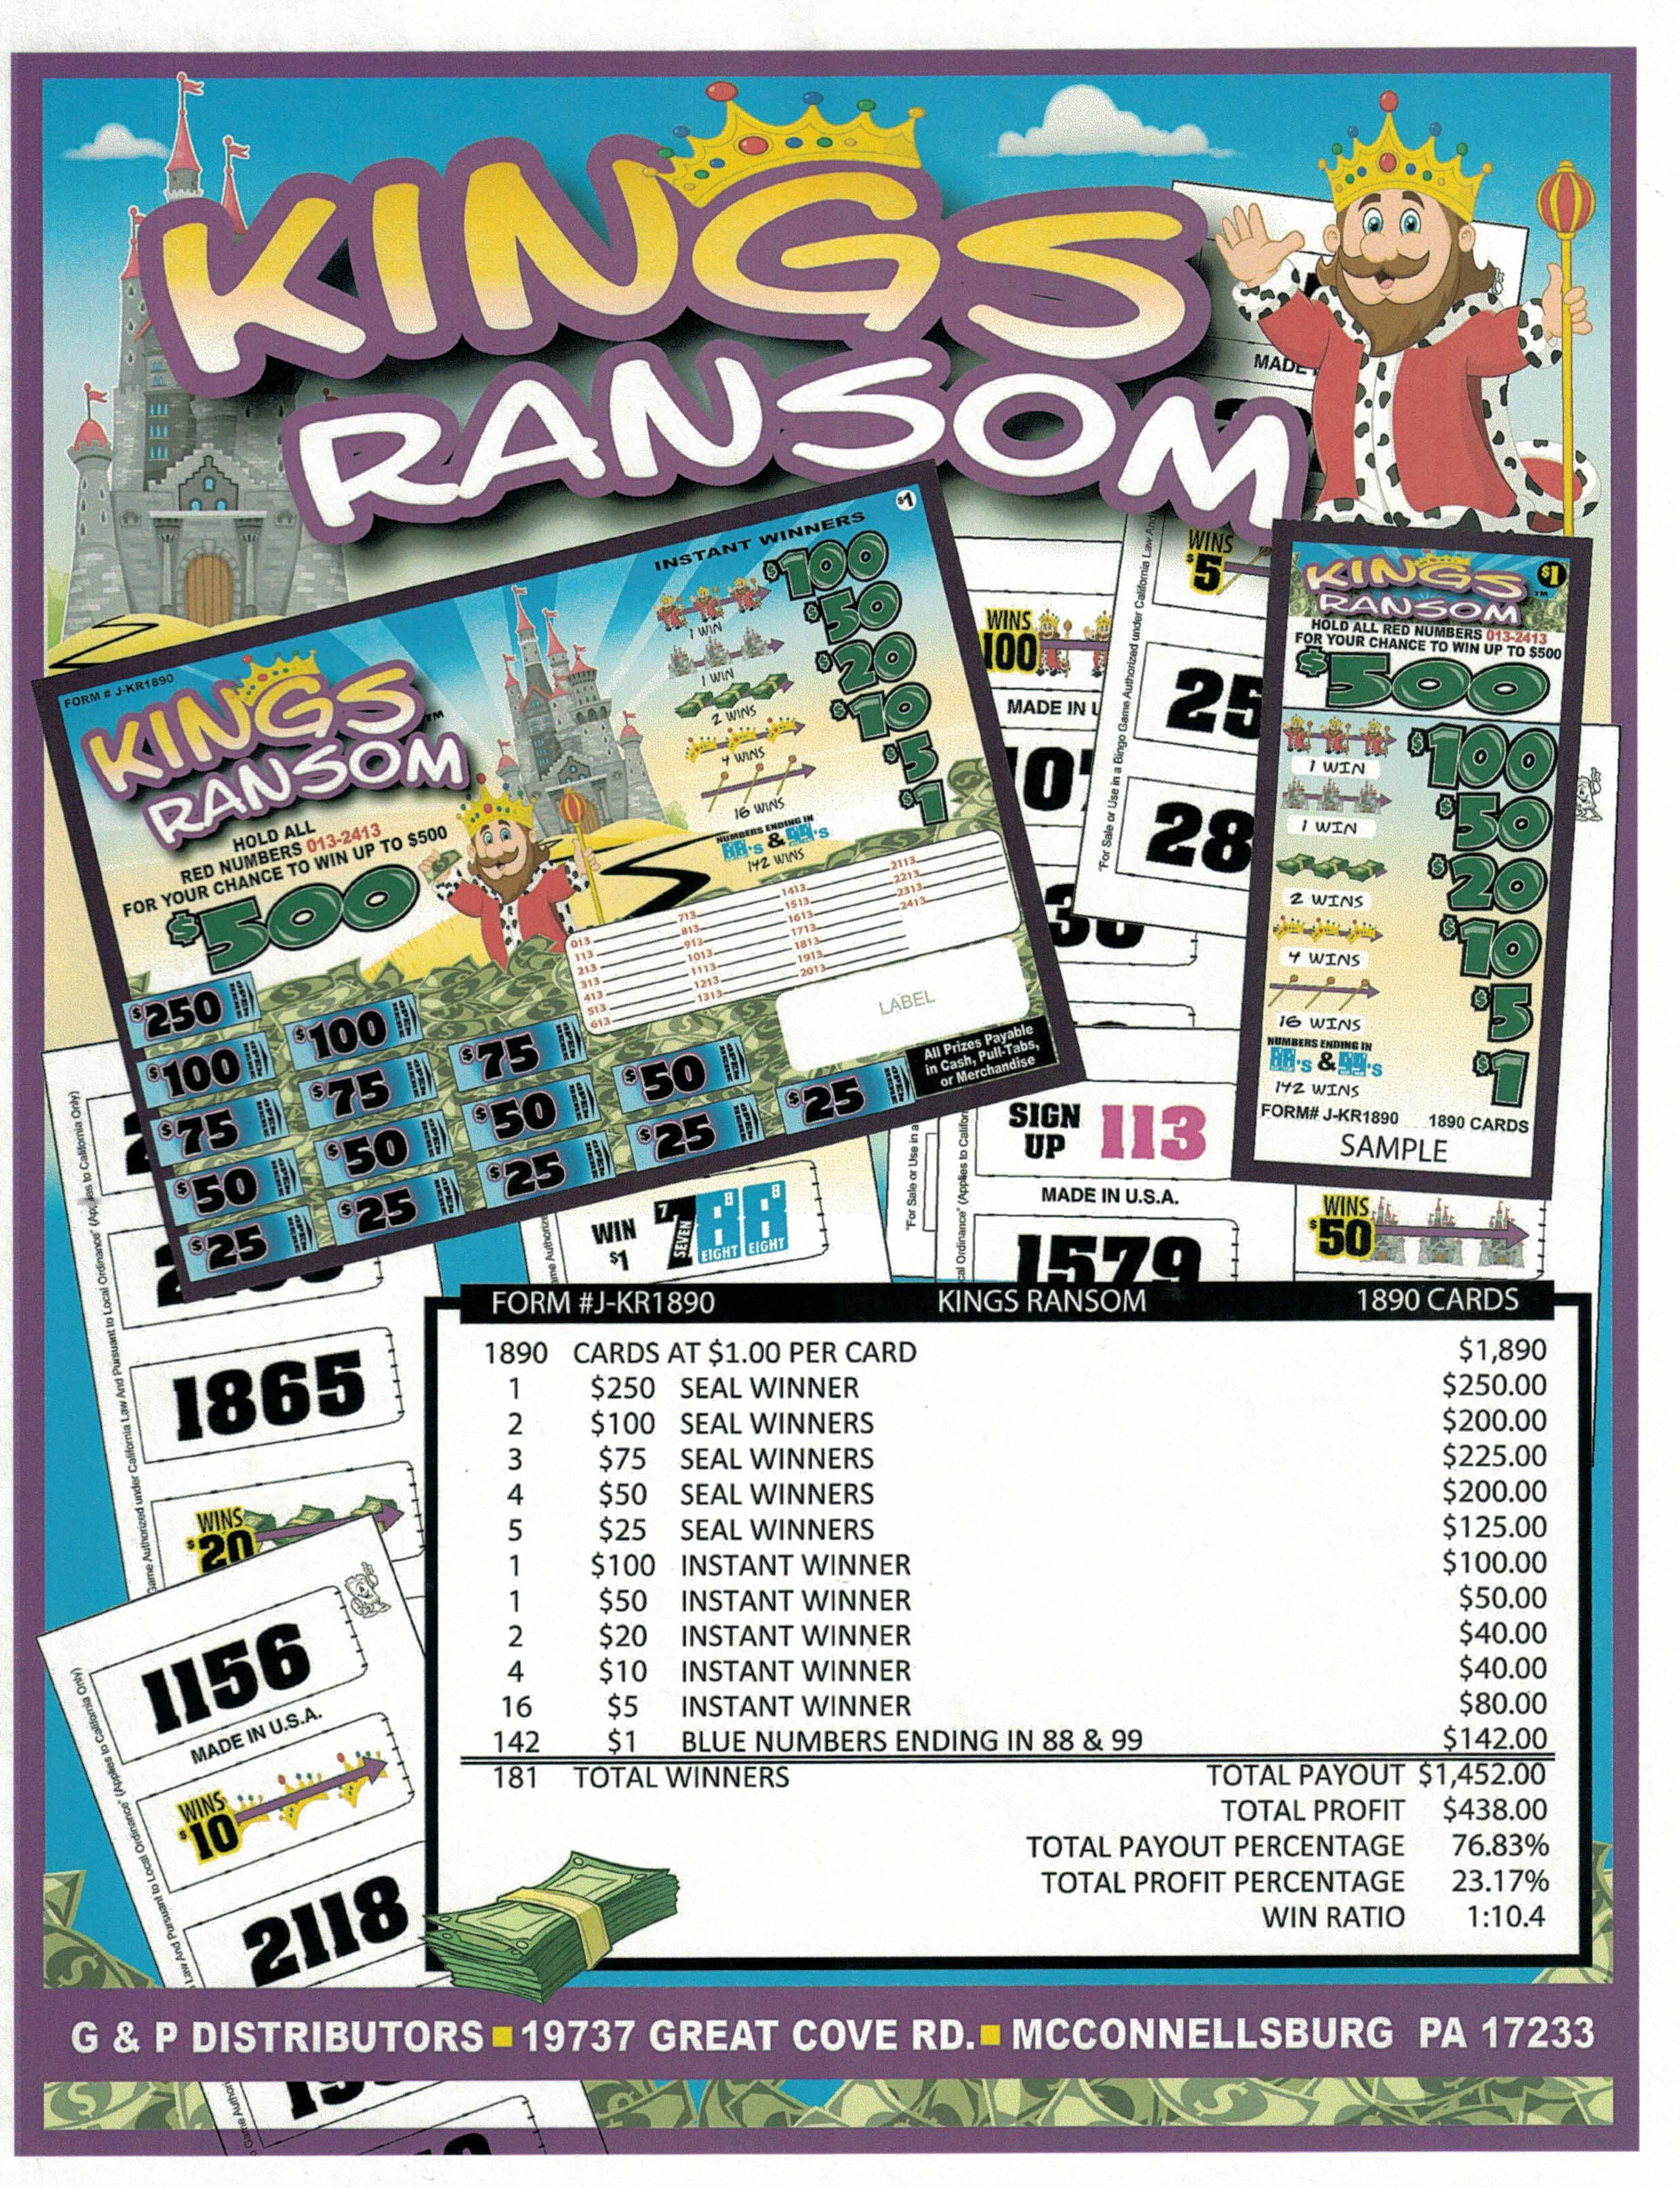 KINGS RANSOM Image